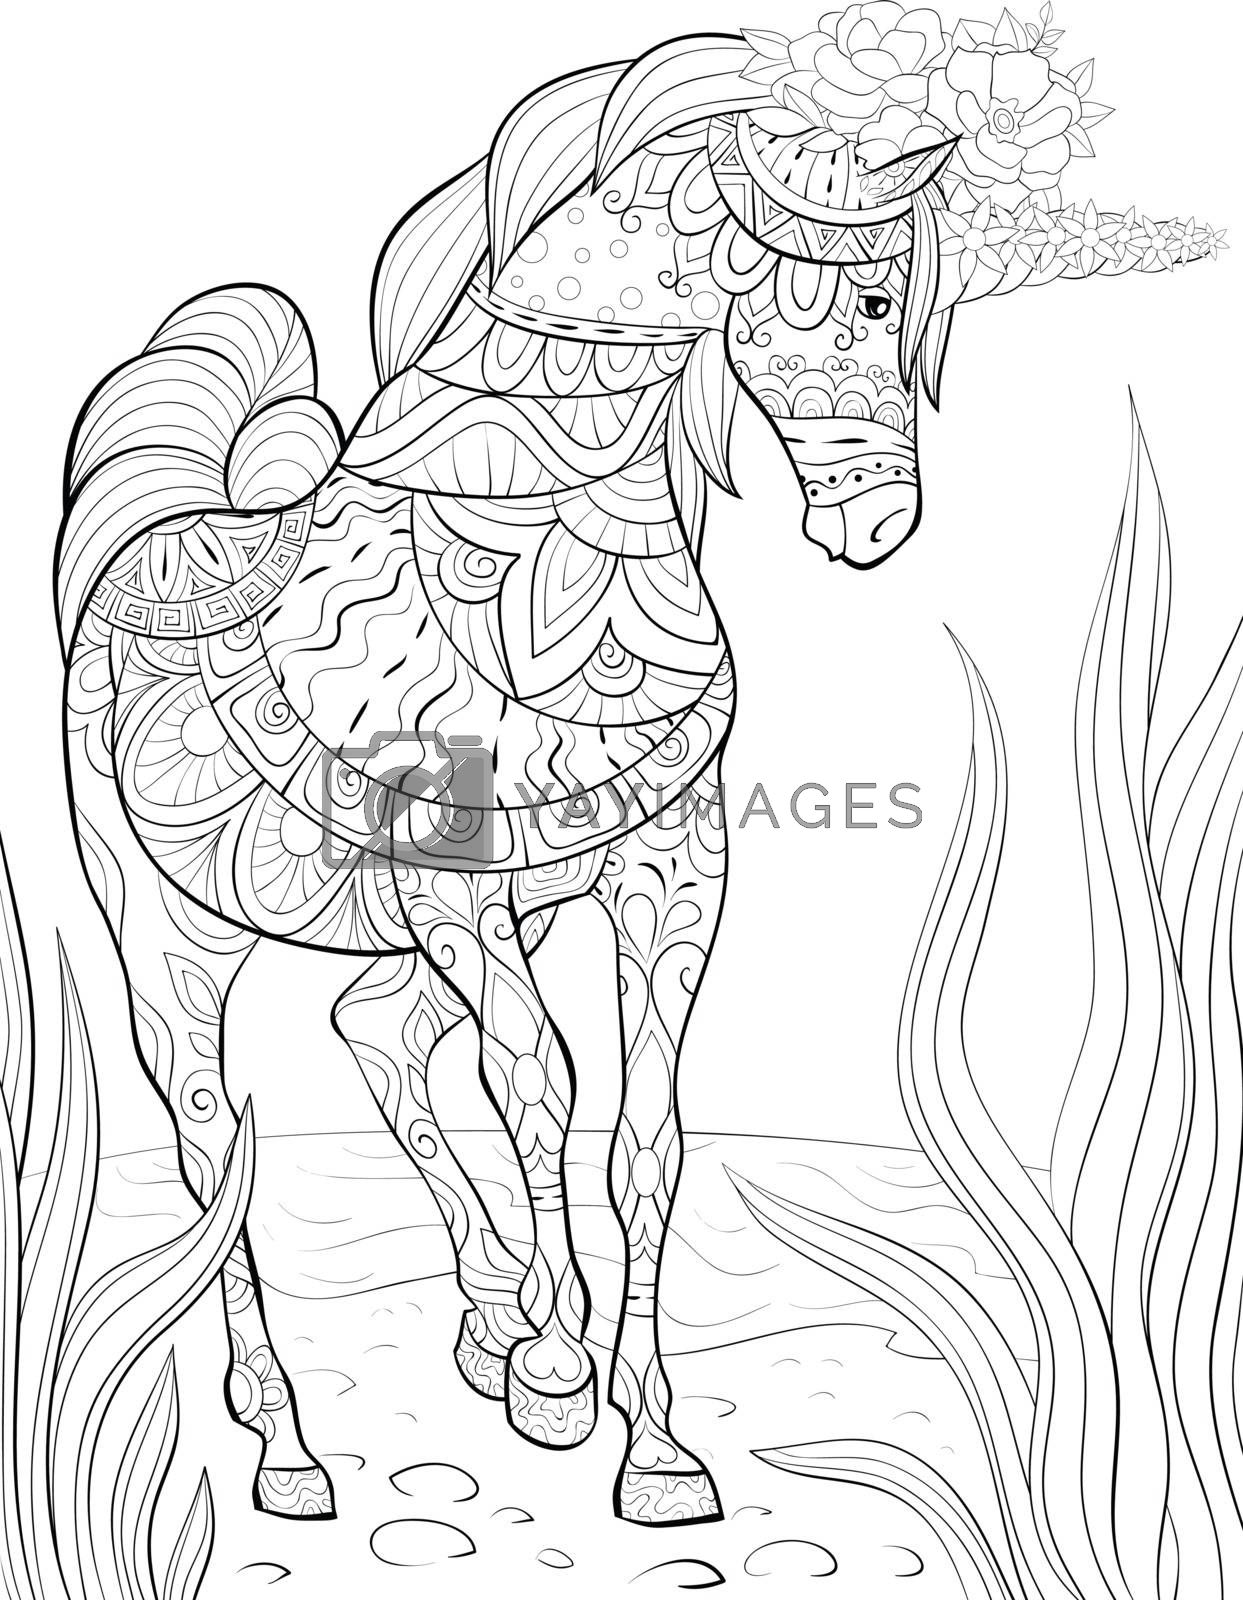 Adult Coloring Book Page A Cute Unicorn For Relaxing Zen Art Sty Royalty Free Stock Image Stock Photos Royalty Free Images Vectors Footage Yayimages